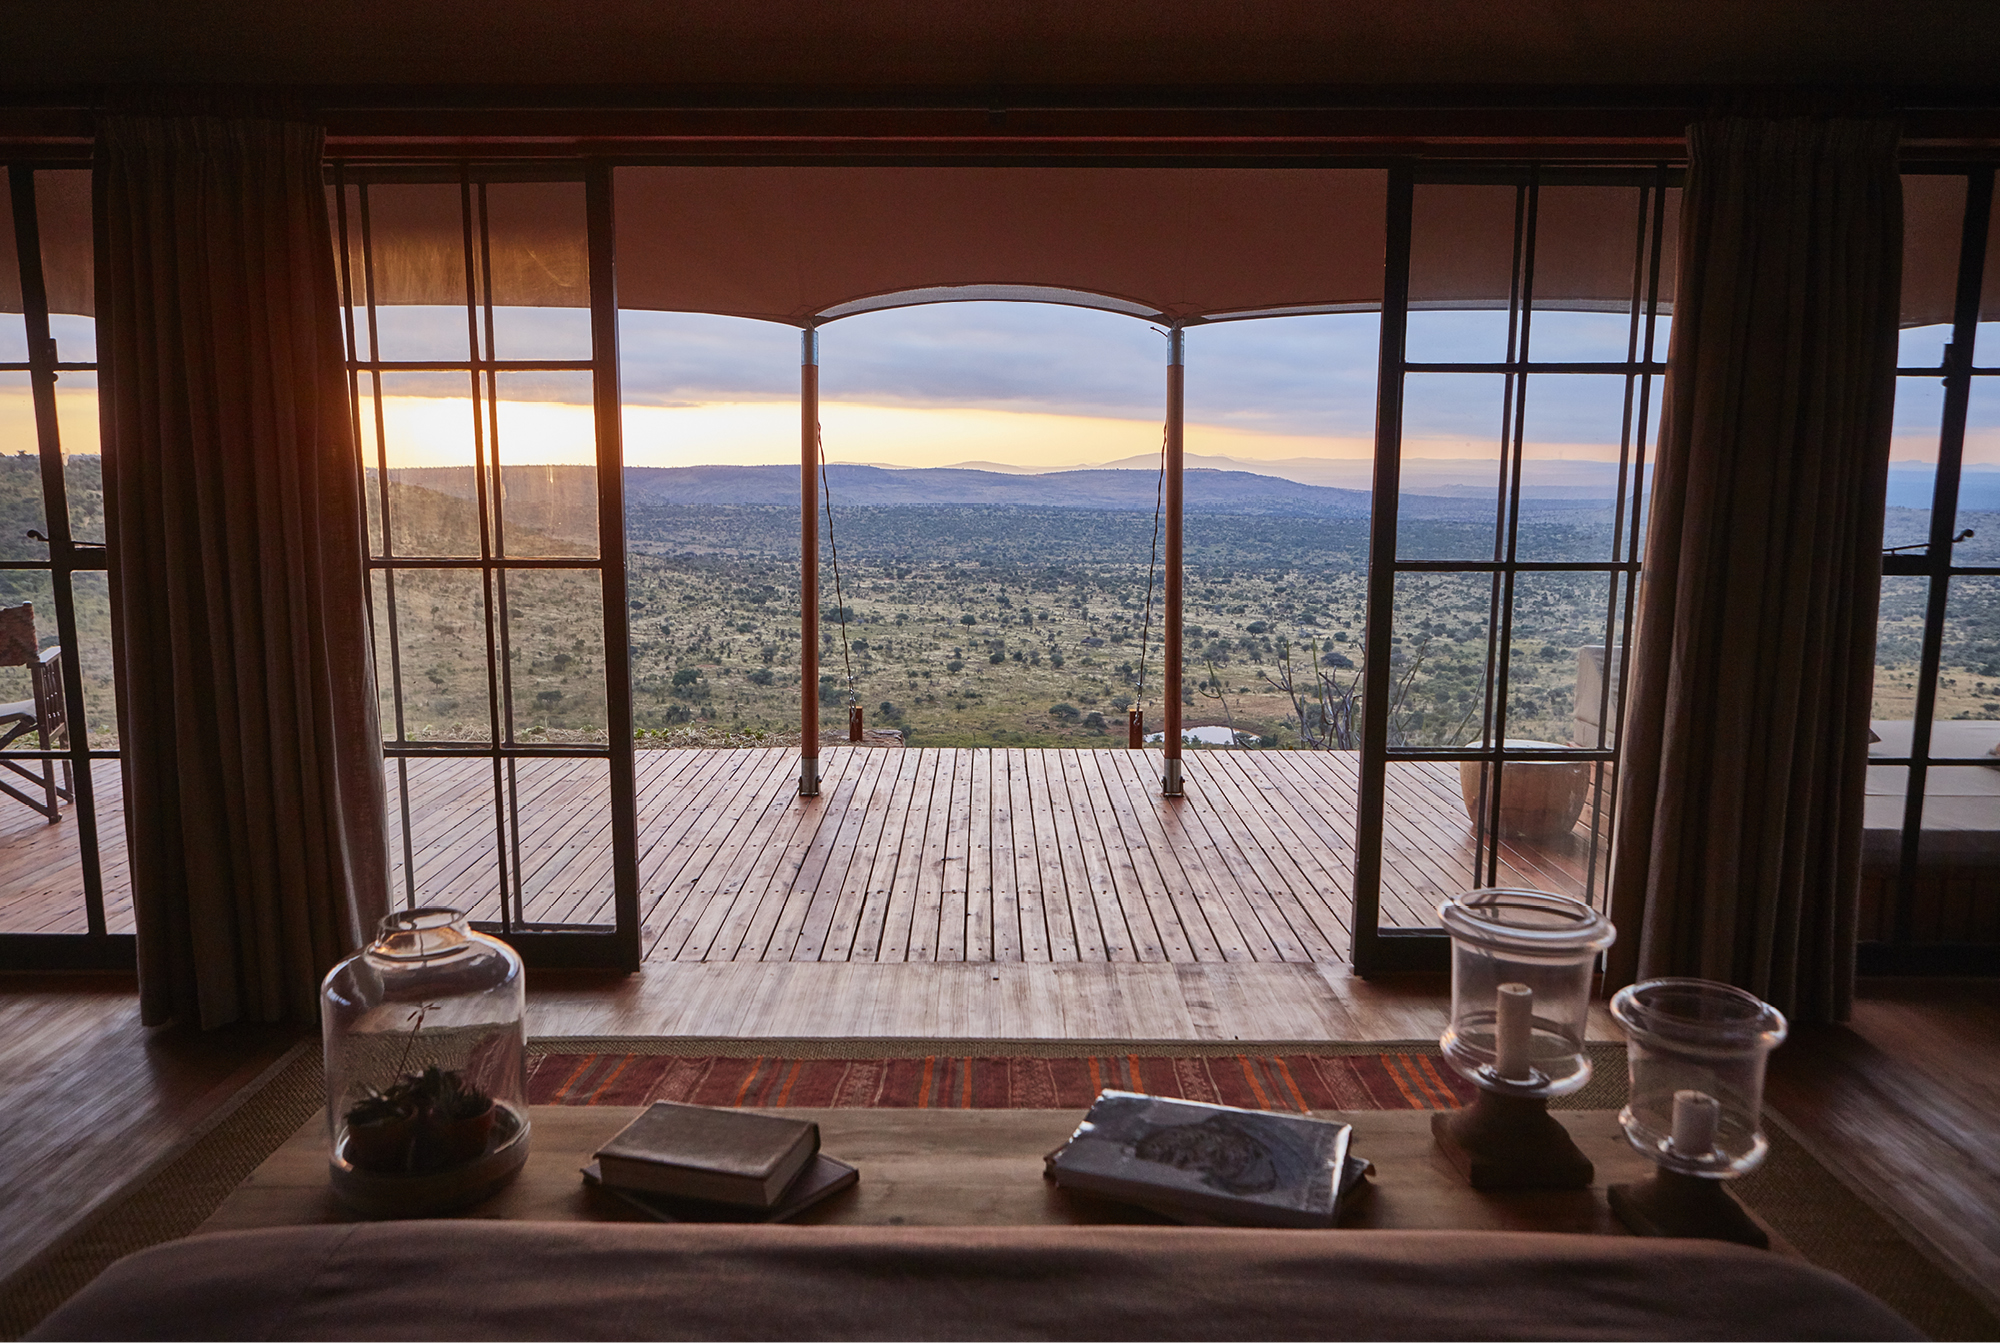 The view from a luxury tented room at Loisaba Lodo Springs